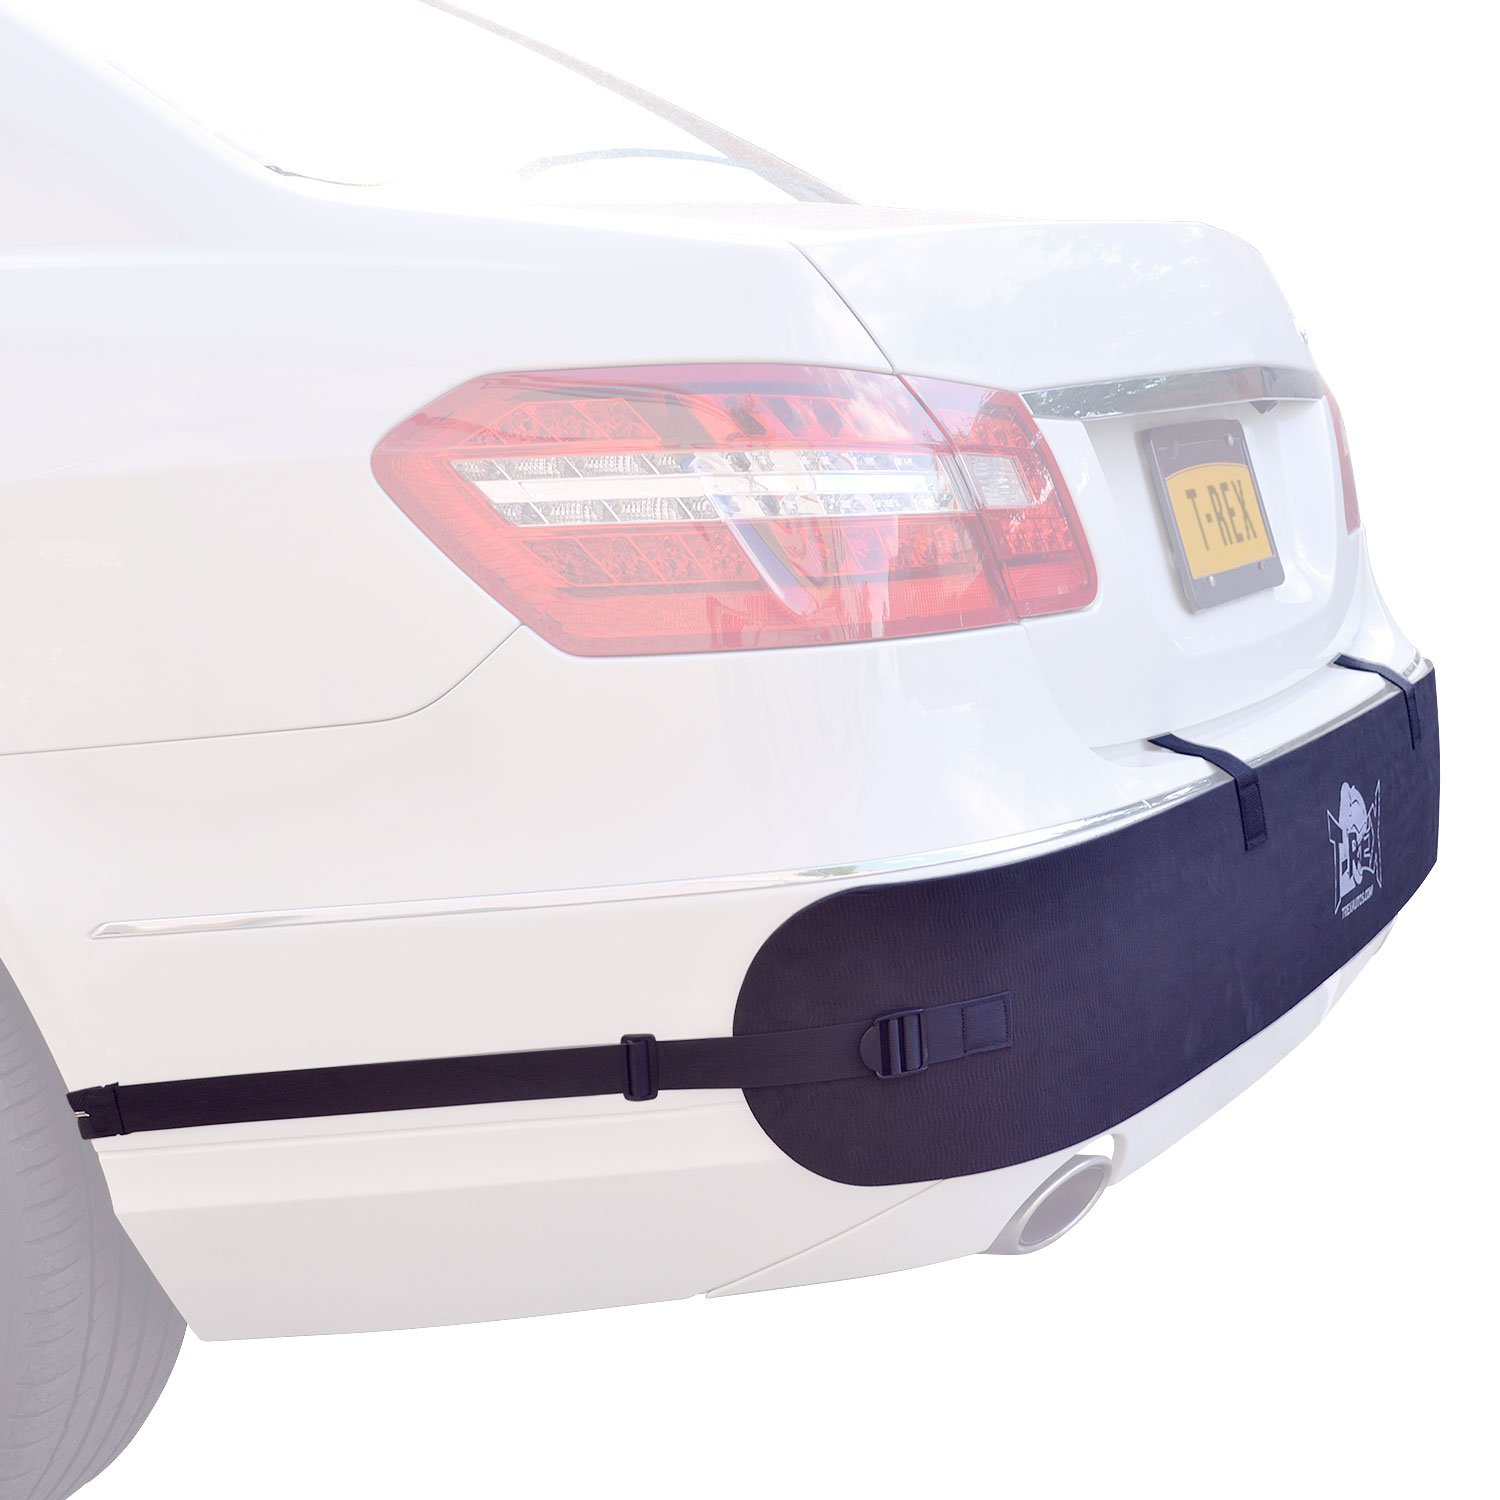 T-Rex Bumper Protector, Rear Bumper Guard for Cars T-Rex Grilles 12012